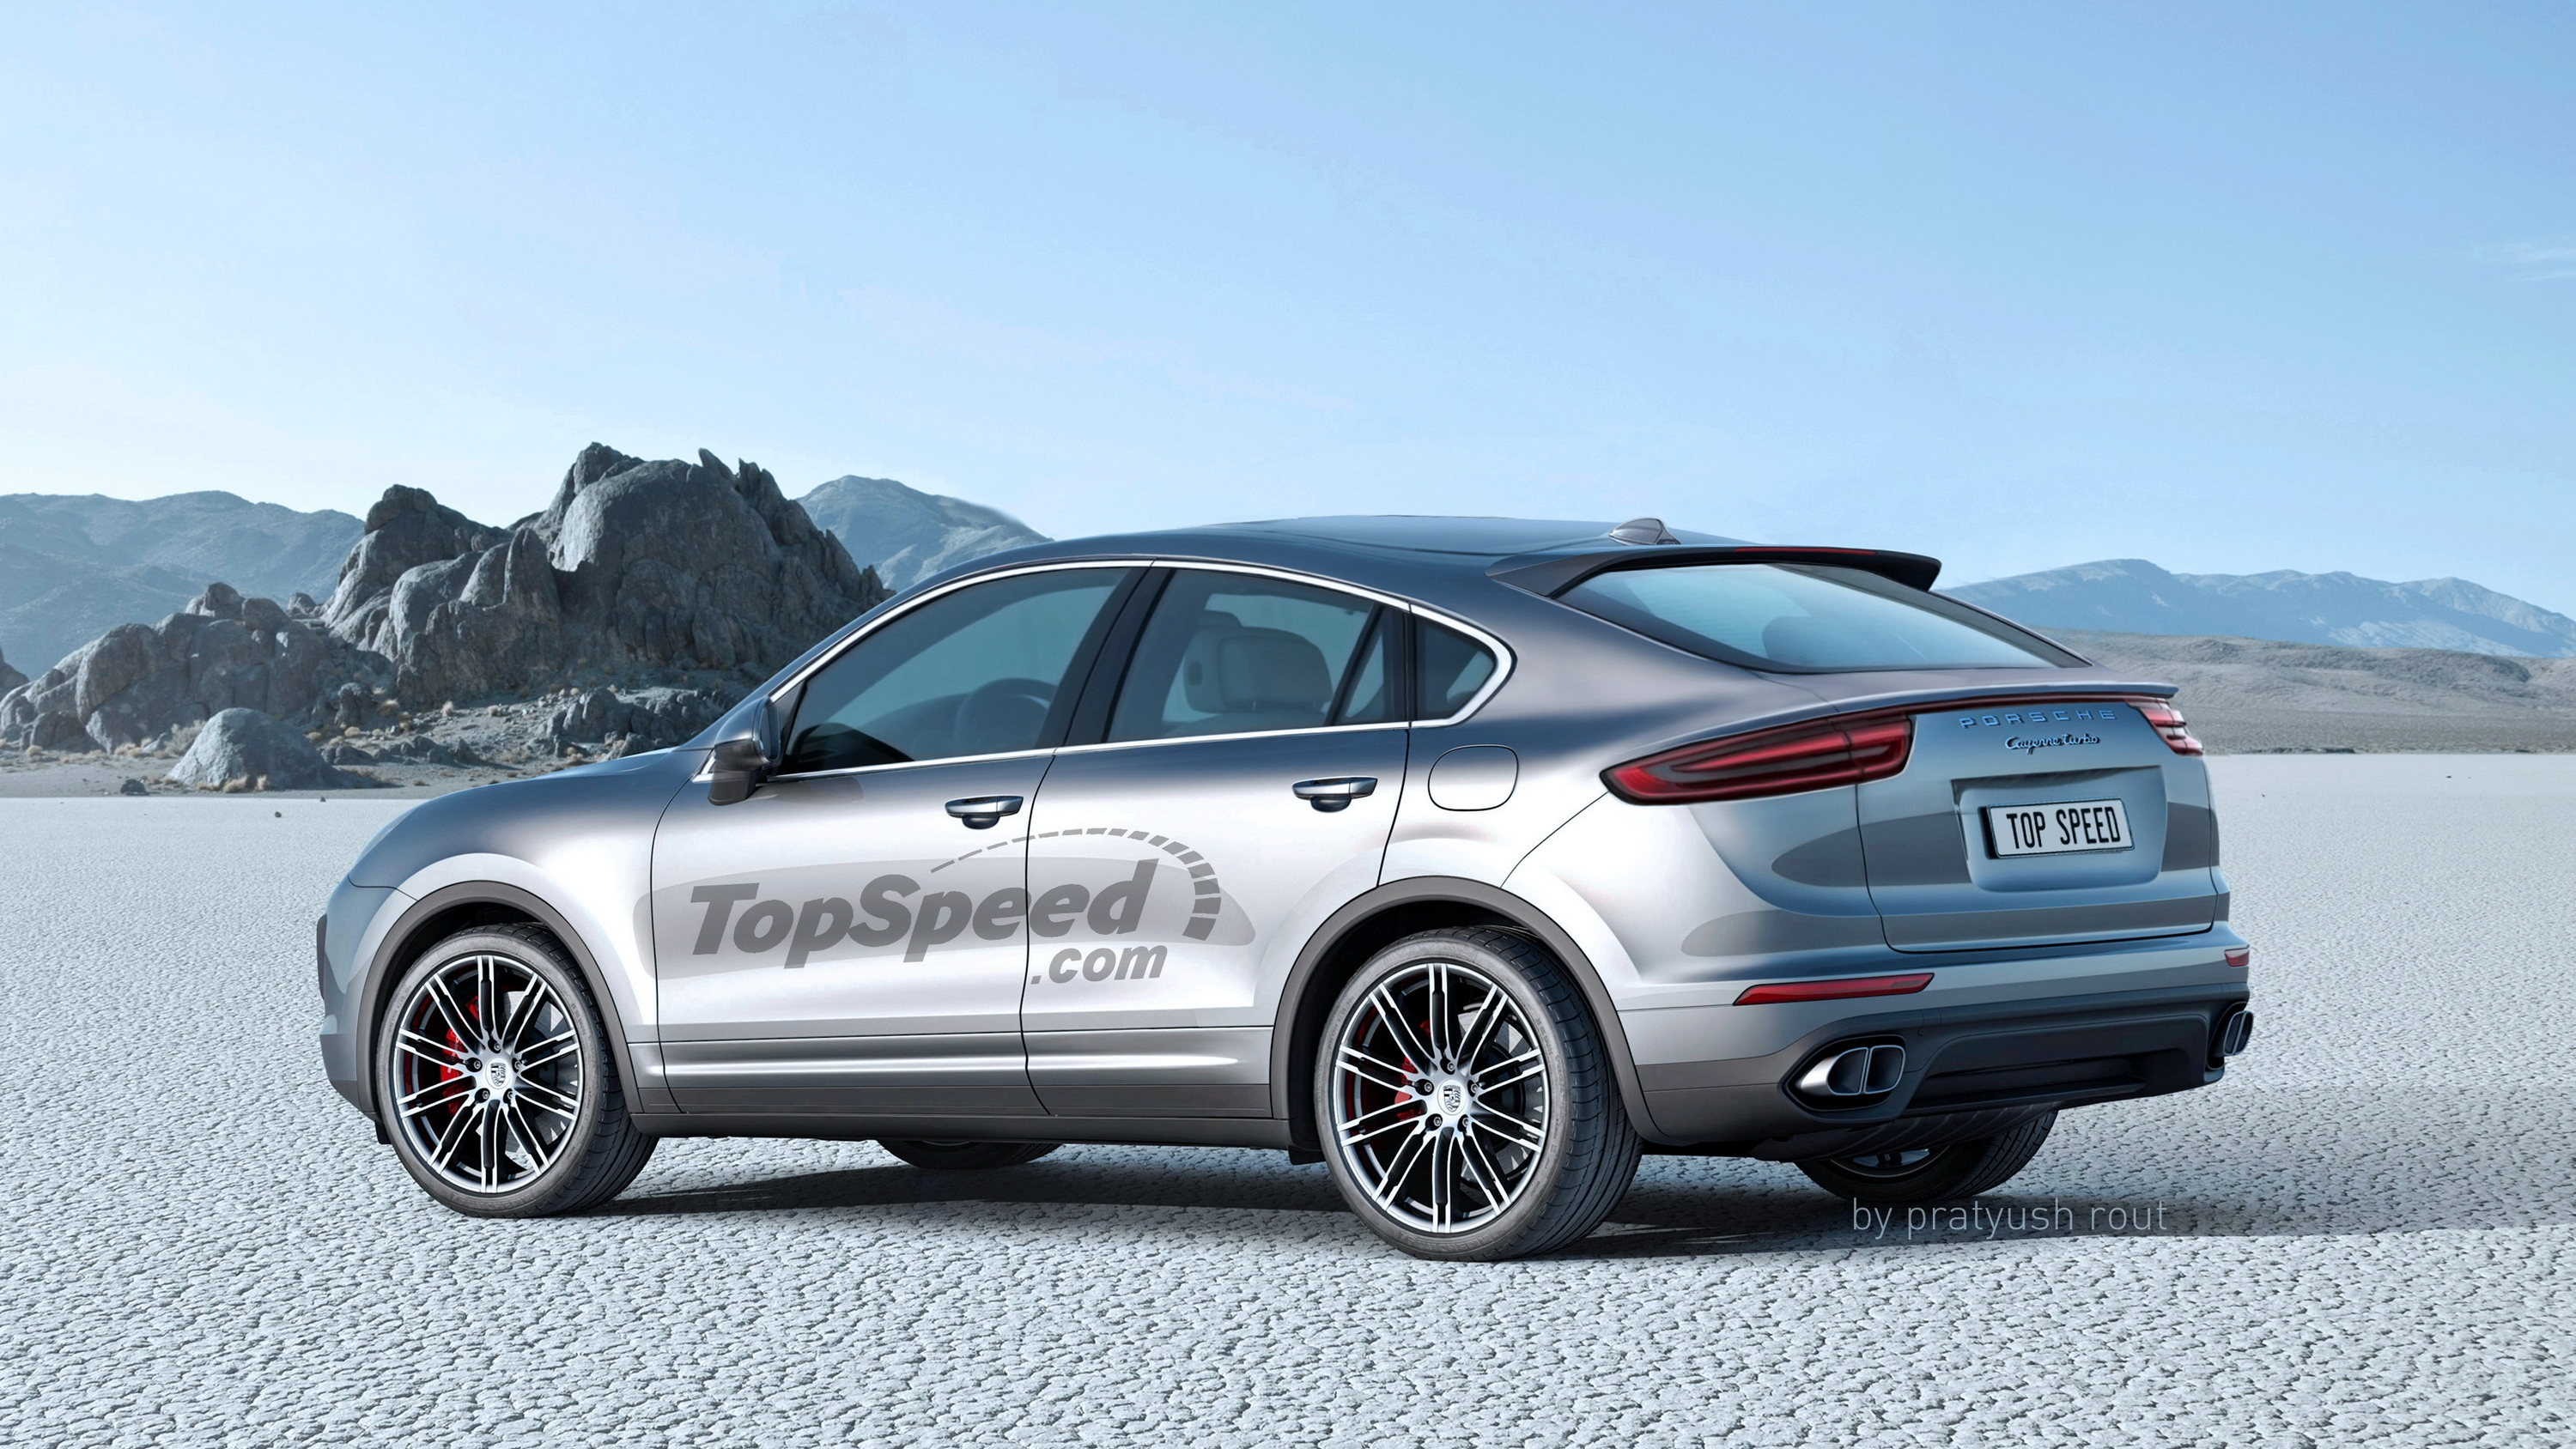 2019 porsche cayenne coupe review top speed. Black Bedroom Furniture Sets. Home Design Ideas